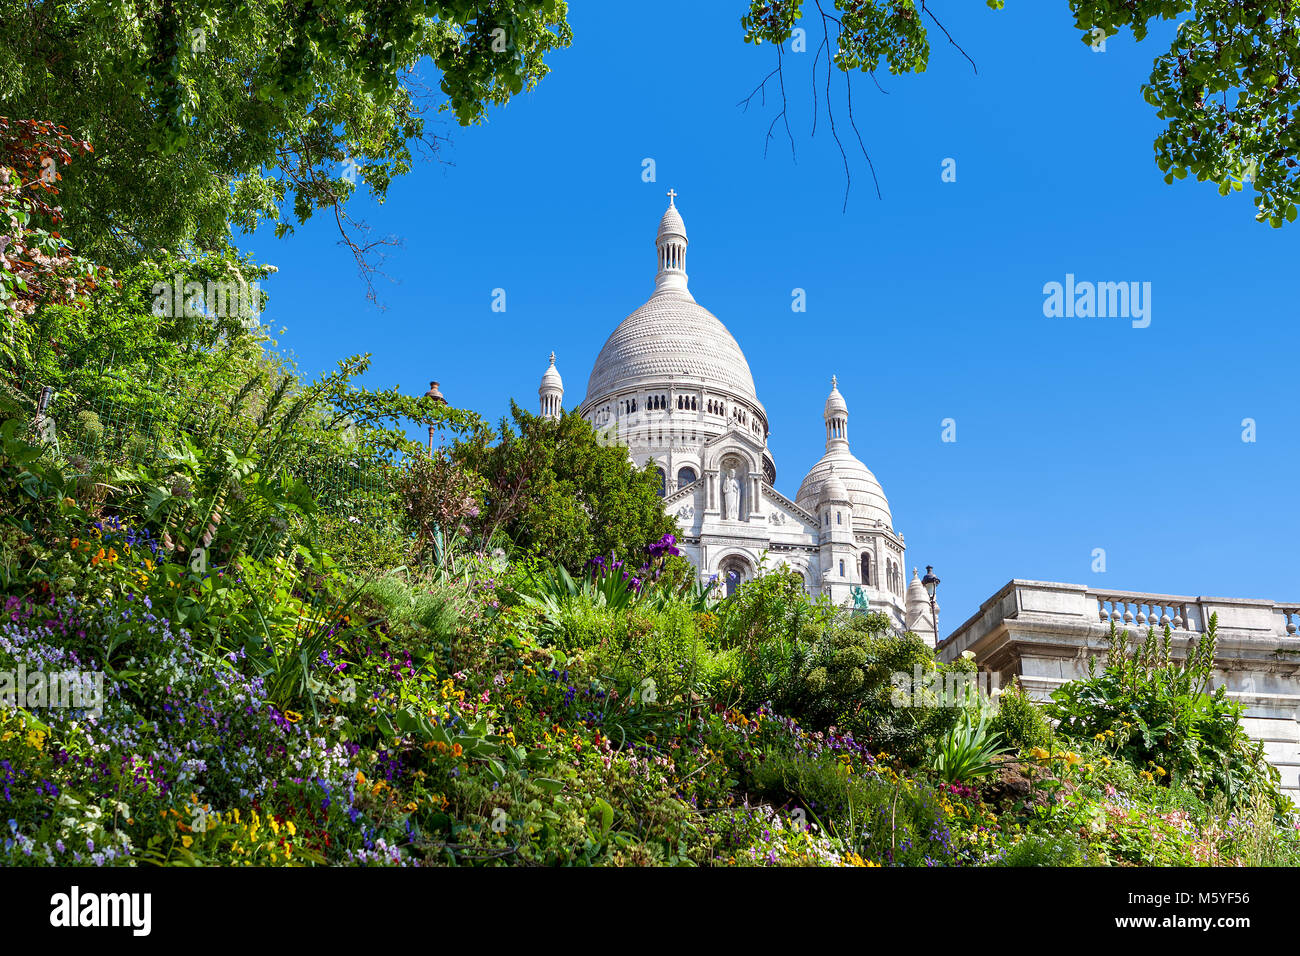 Green flowerbed with flowers as famous Sacre-Coeur Basilica on background under blue sky in Paris, France. - Stock Image